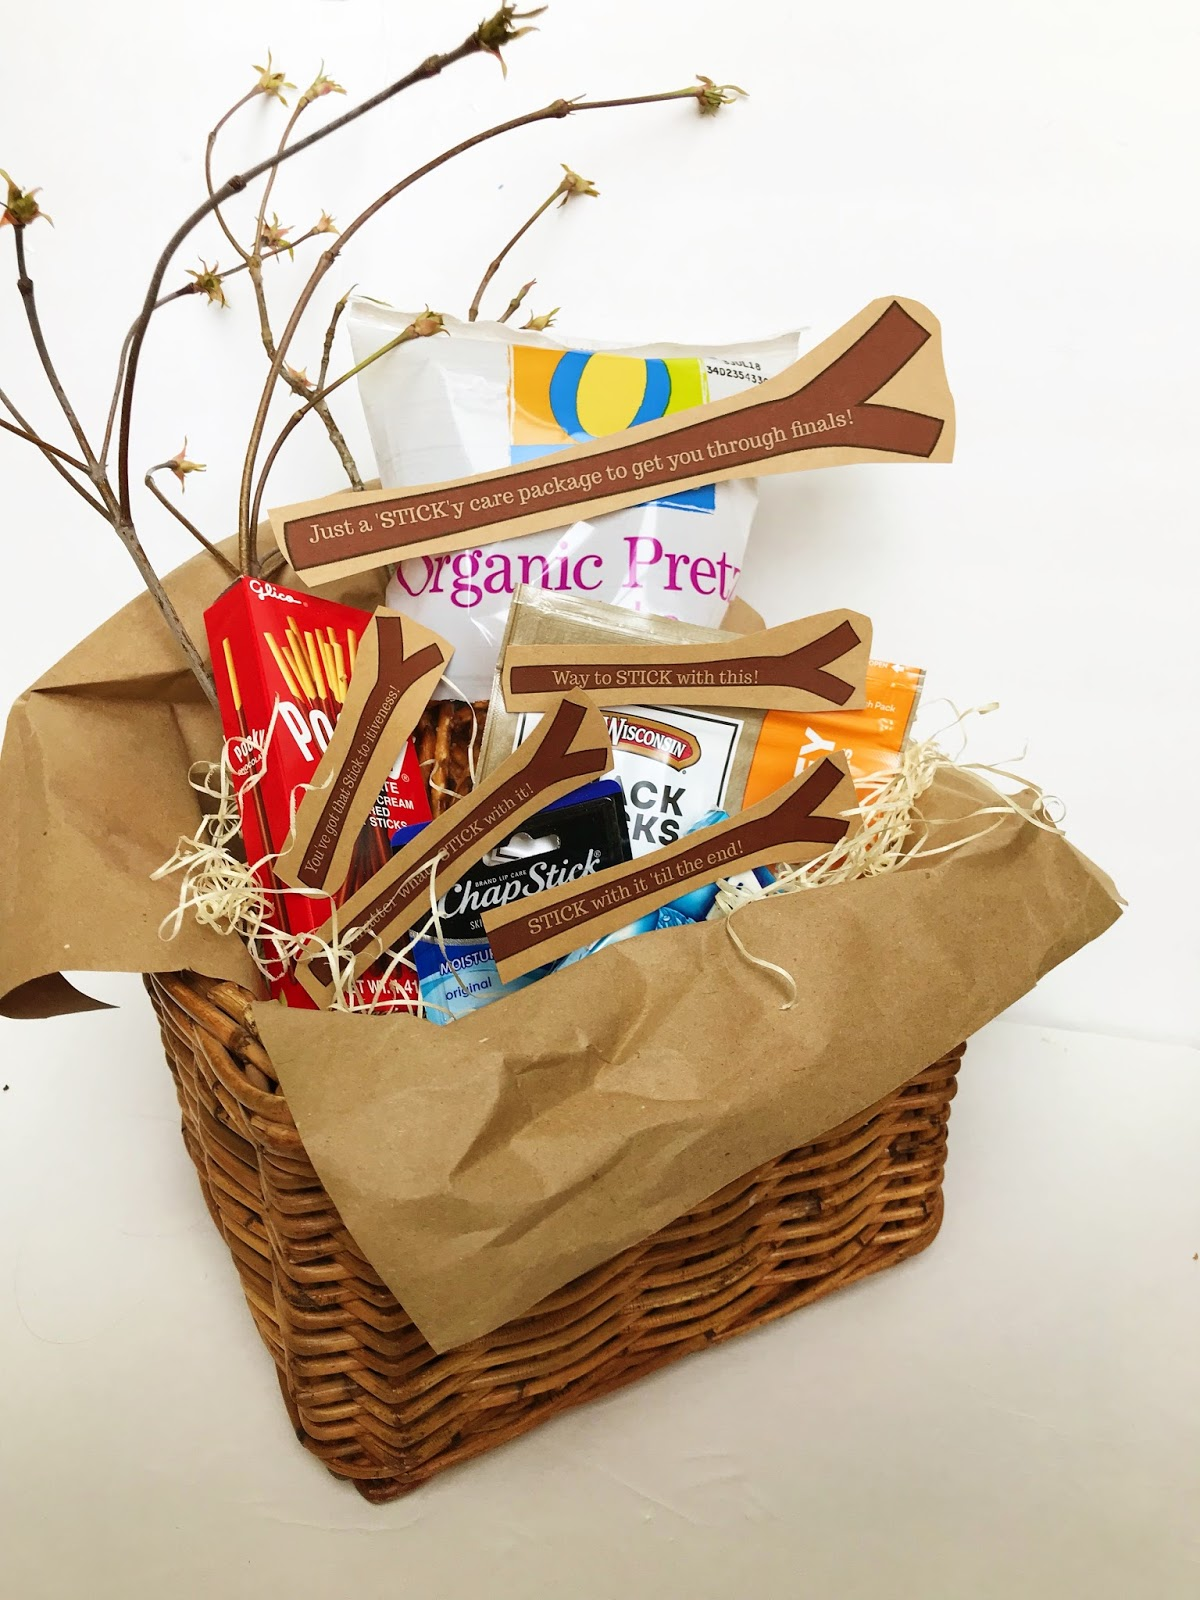 College finals care package ideas @michellepaigeblogs.com